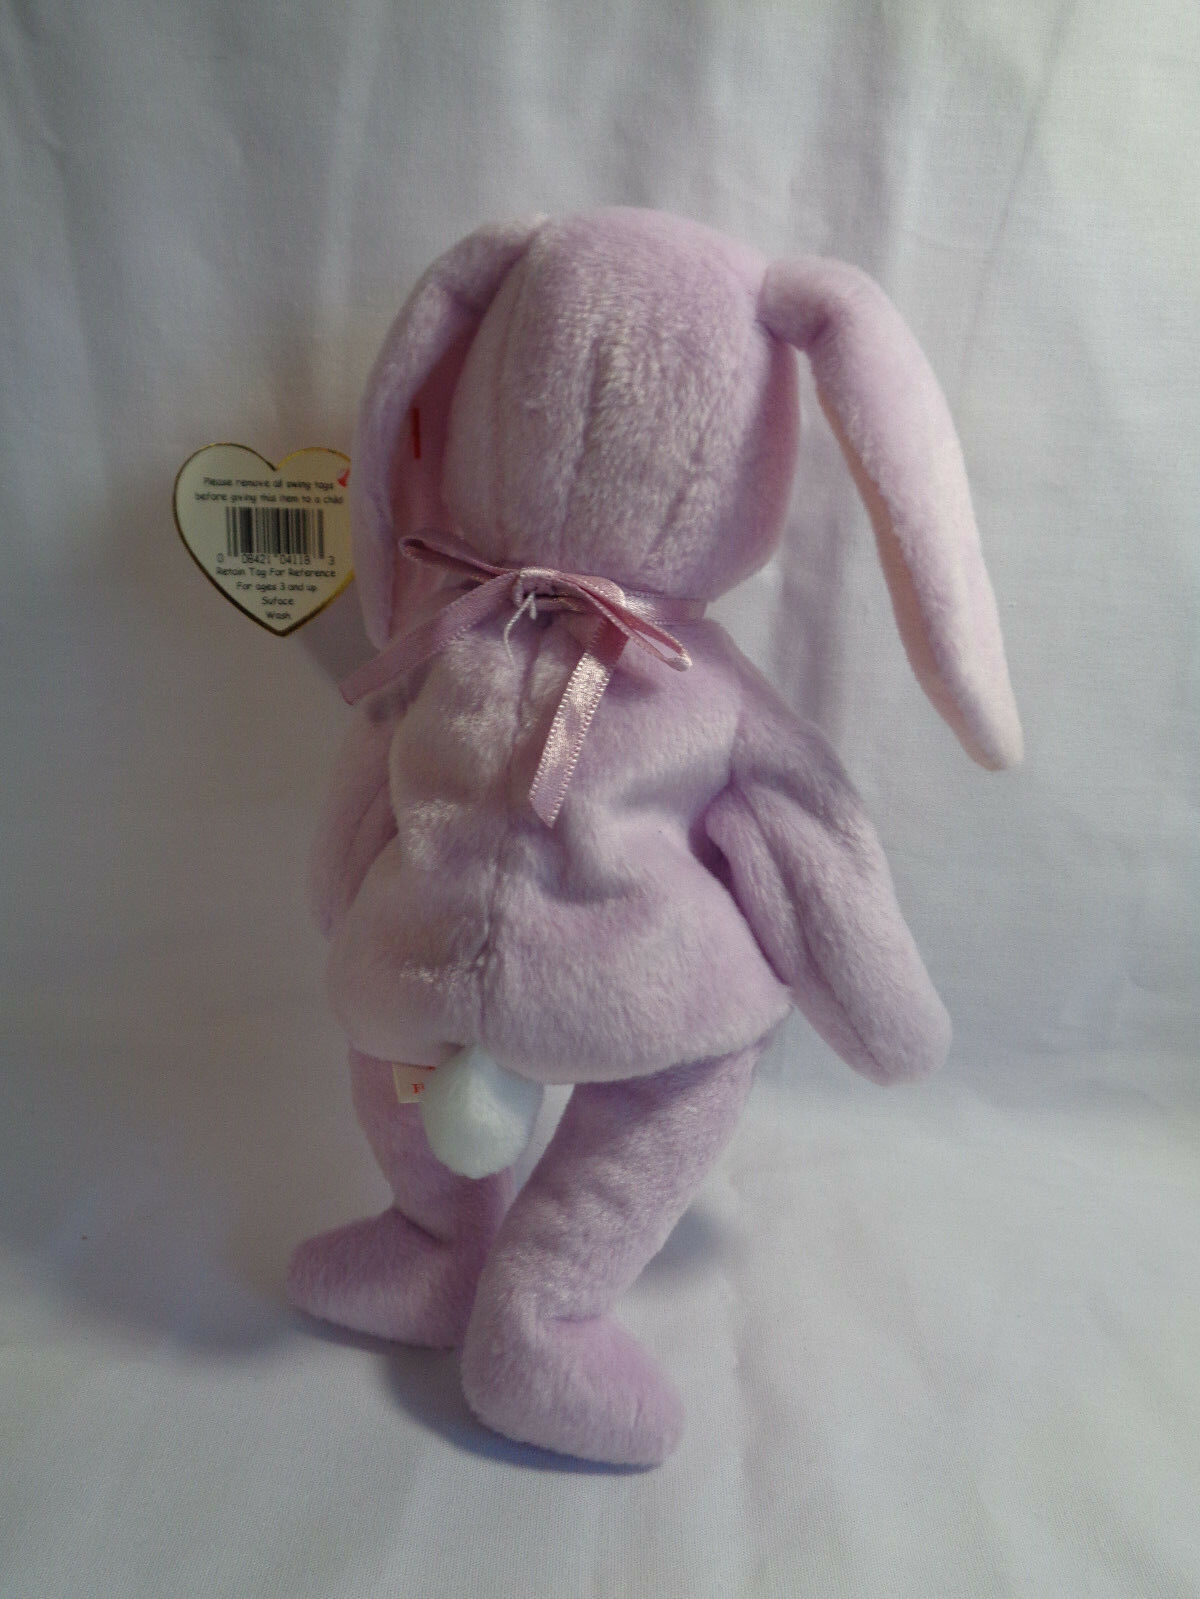 """TY Beanie Babies 1996 Lavender Bunny Floppity 8"""" w/ Hang Tag 5/23/96 image 4"""